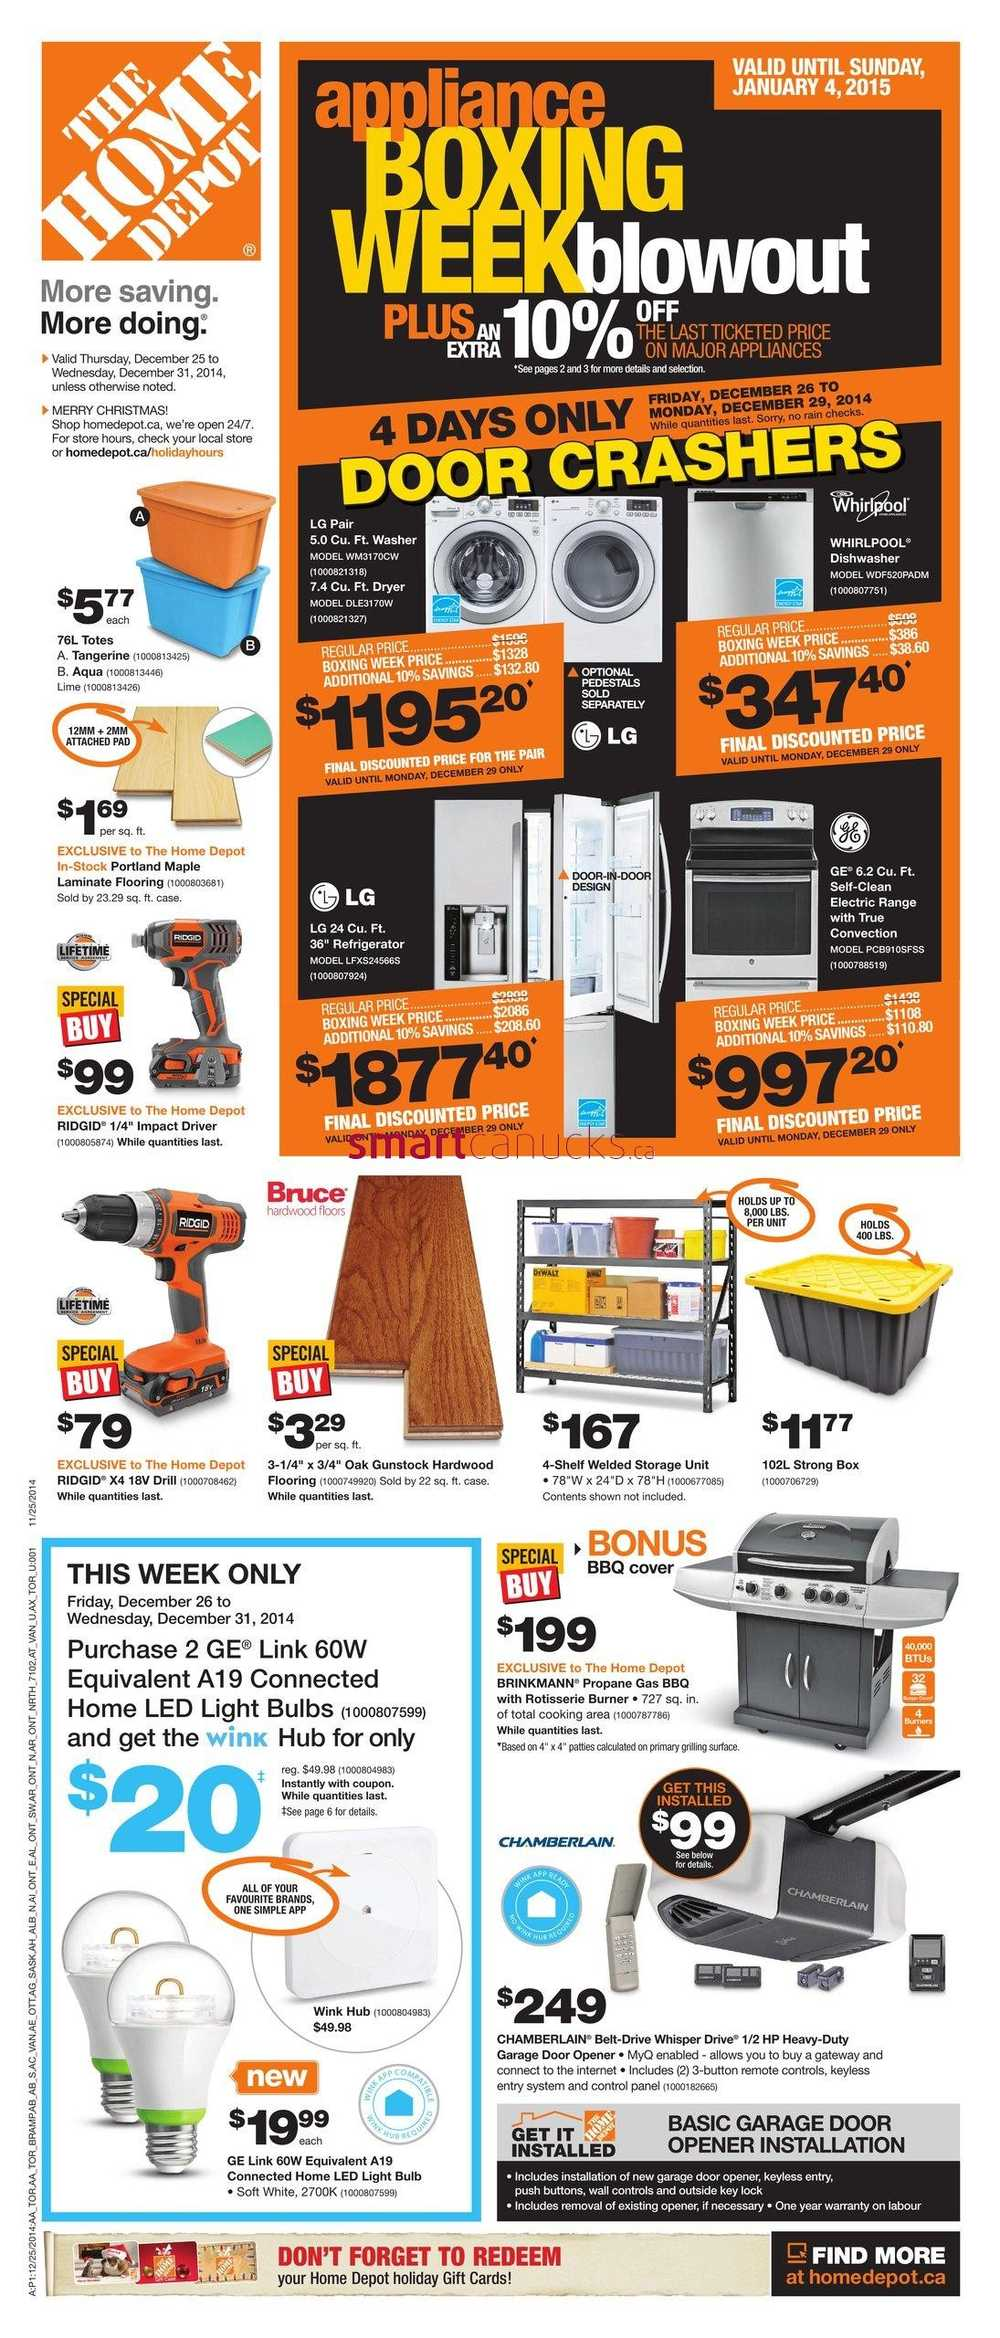 Weekly Flyer For Home Depot Image of Local Worship